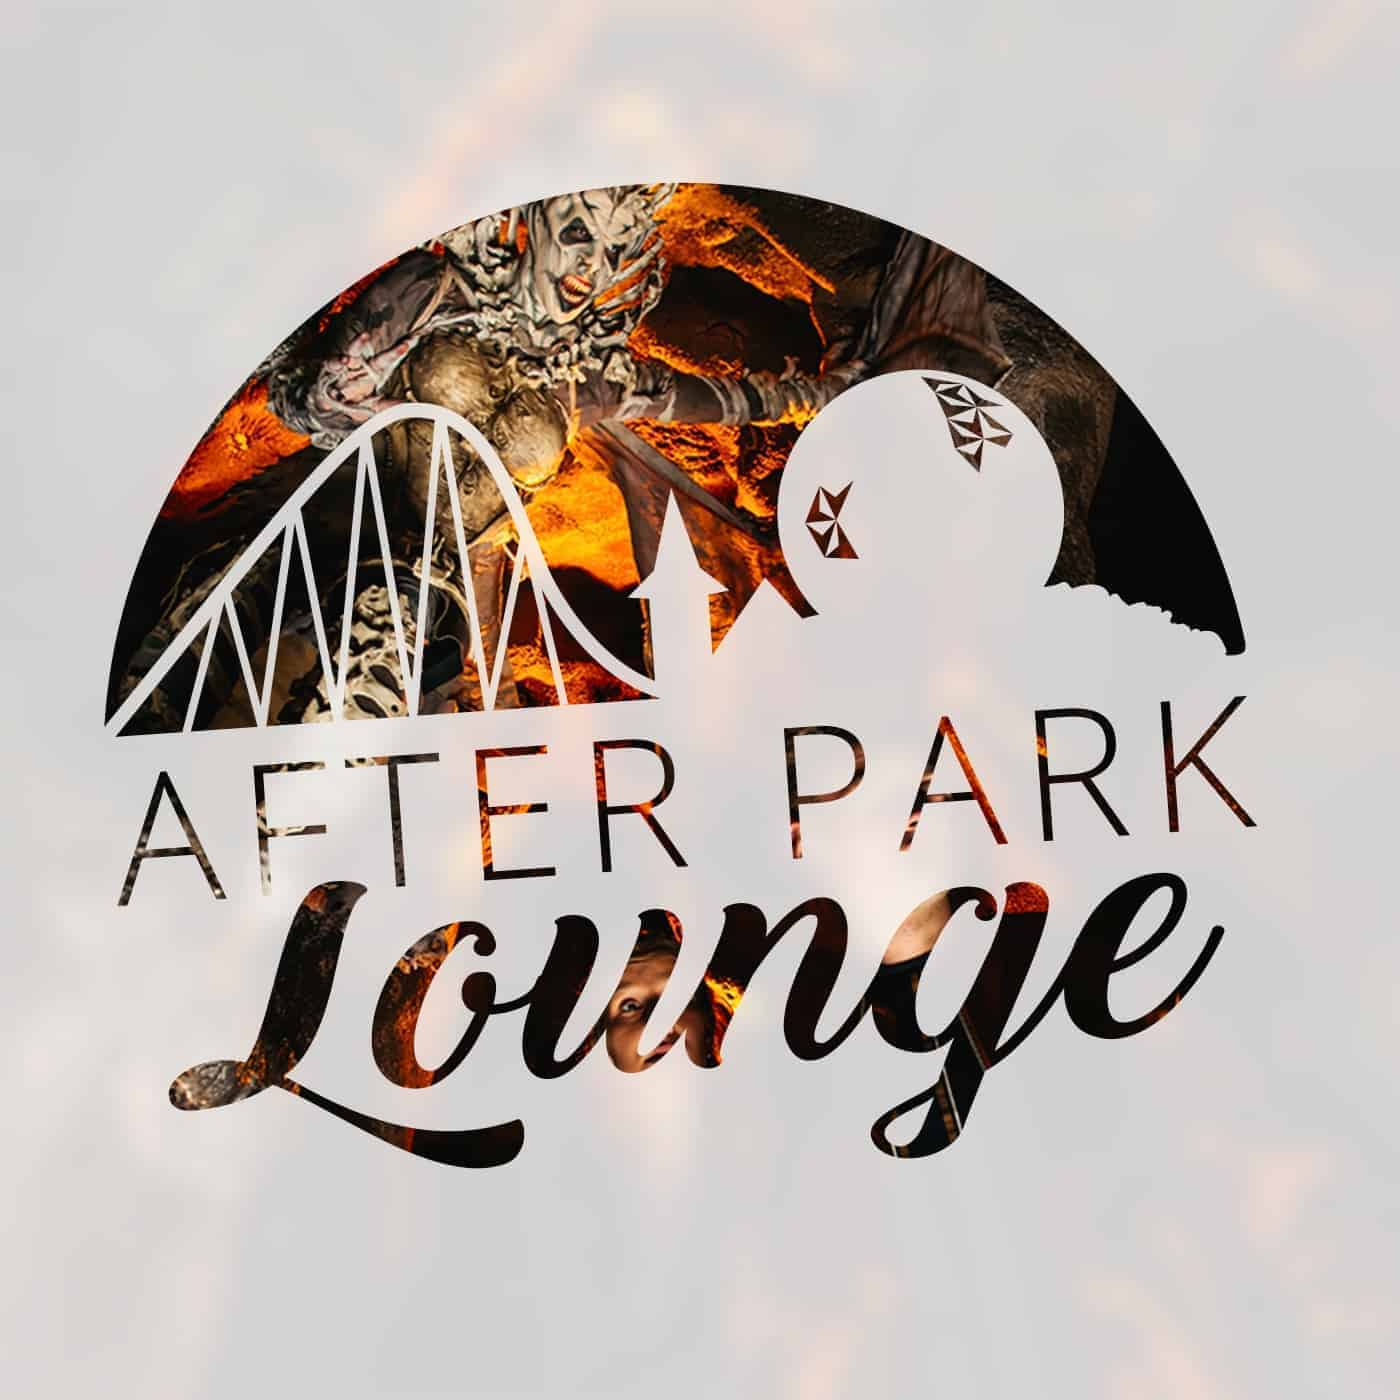 After Park Lounge 22: Horror Nights Traumatica